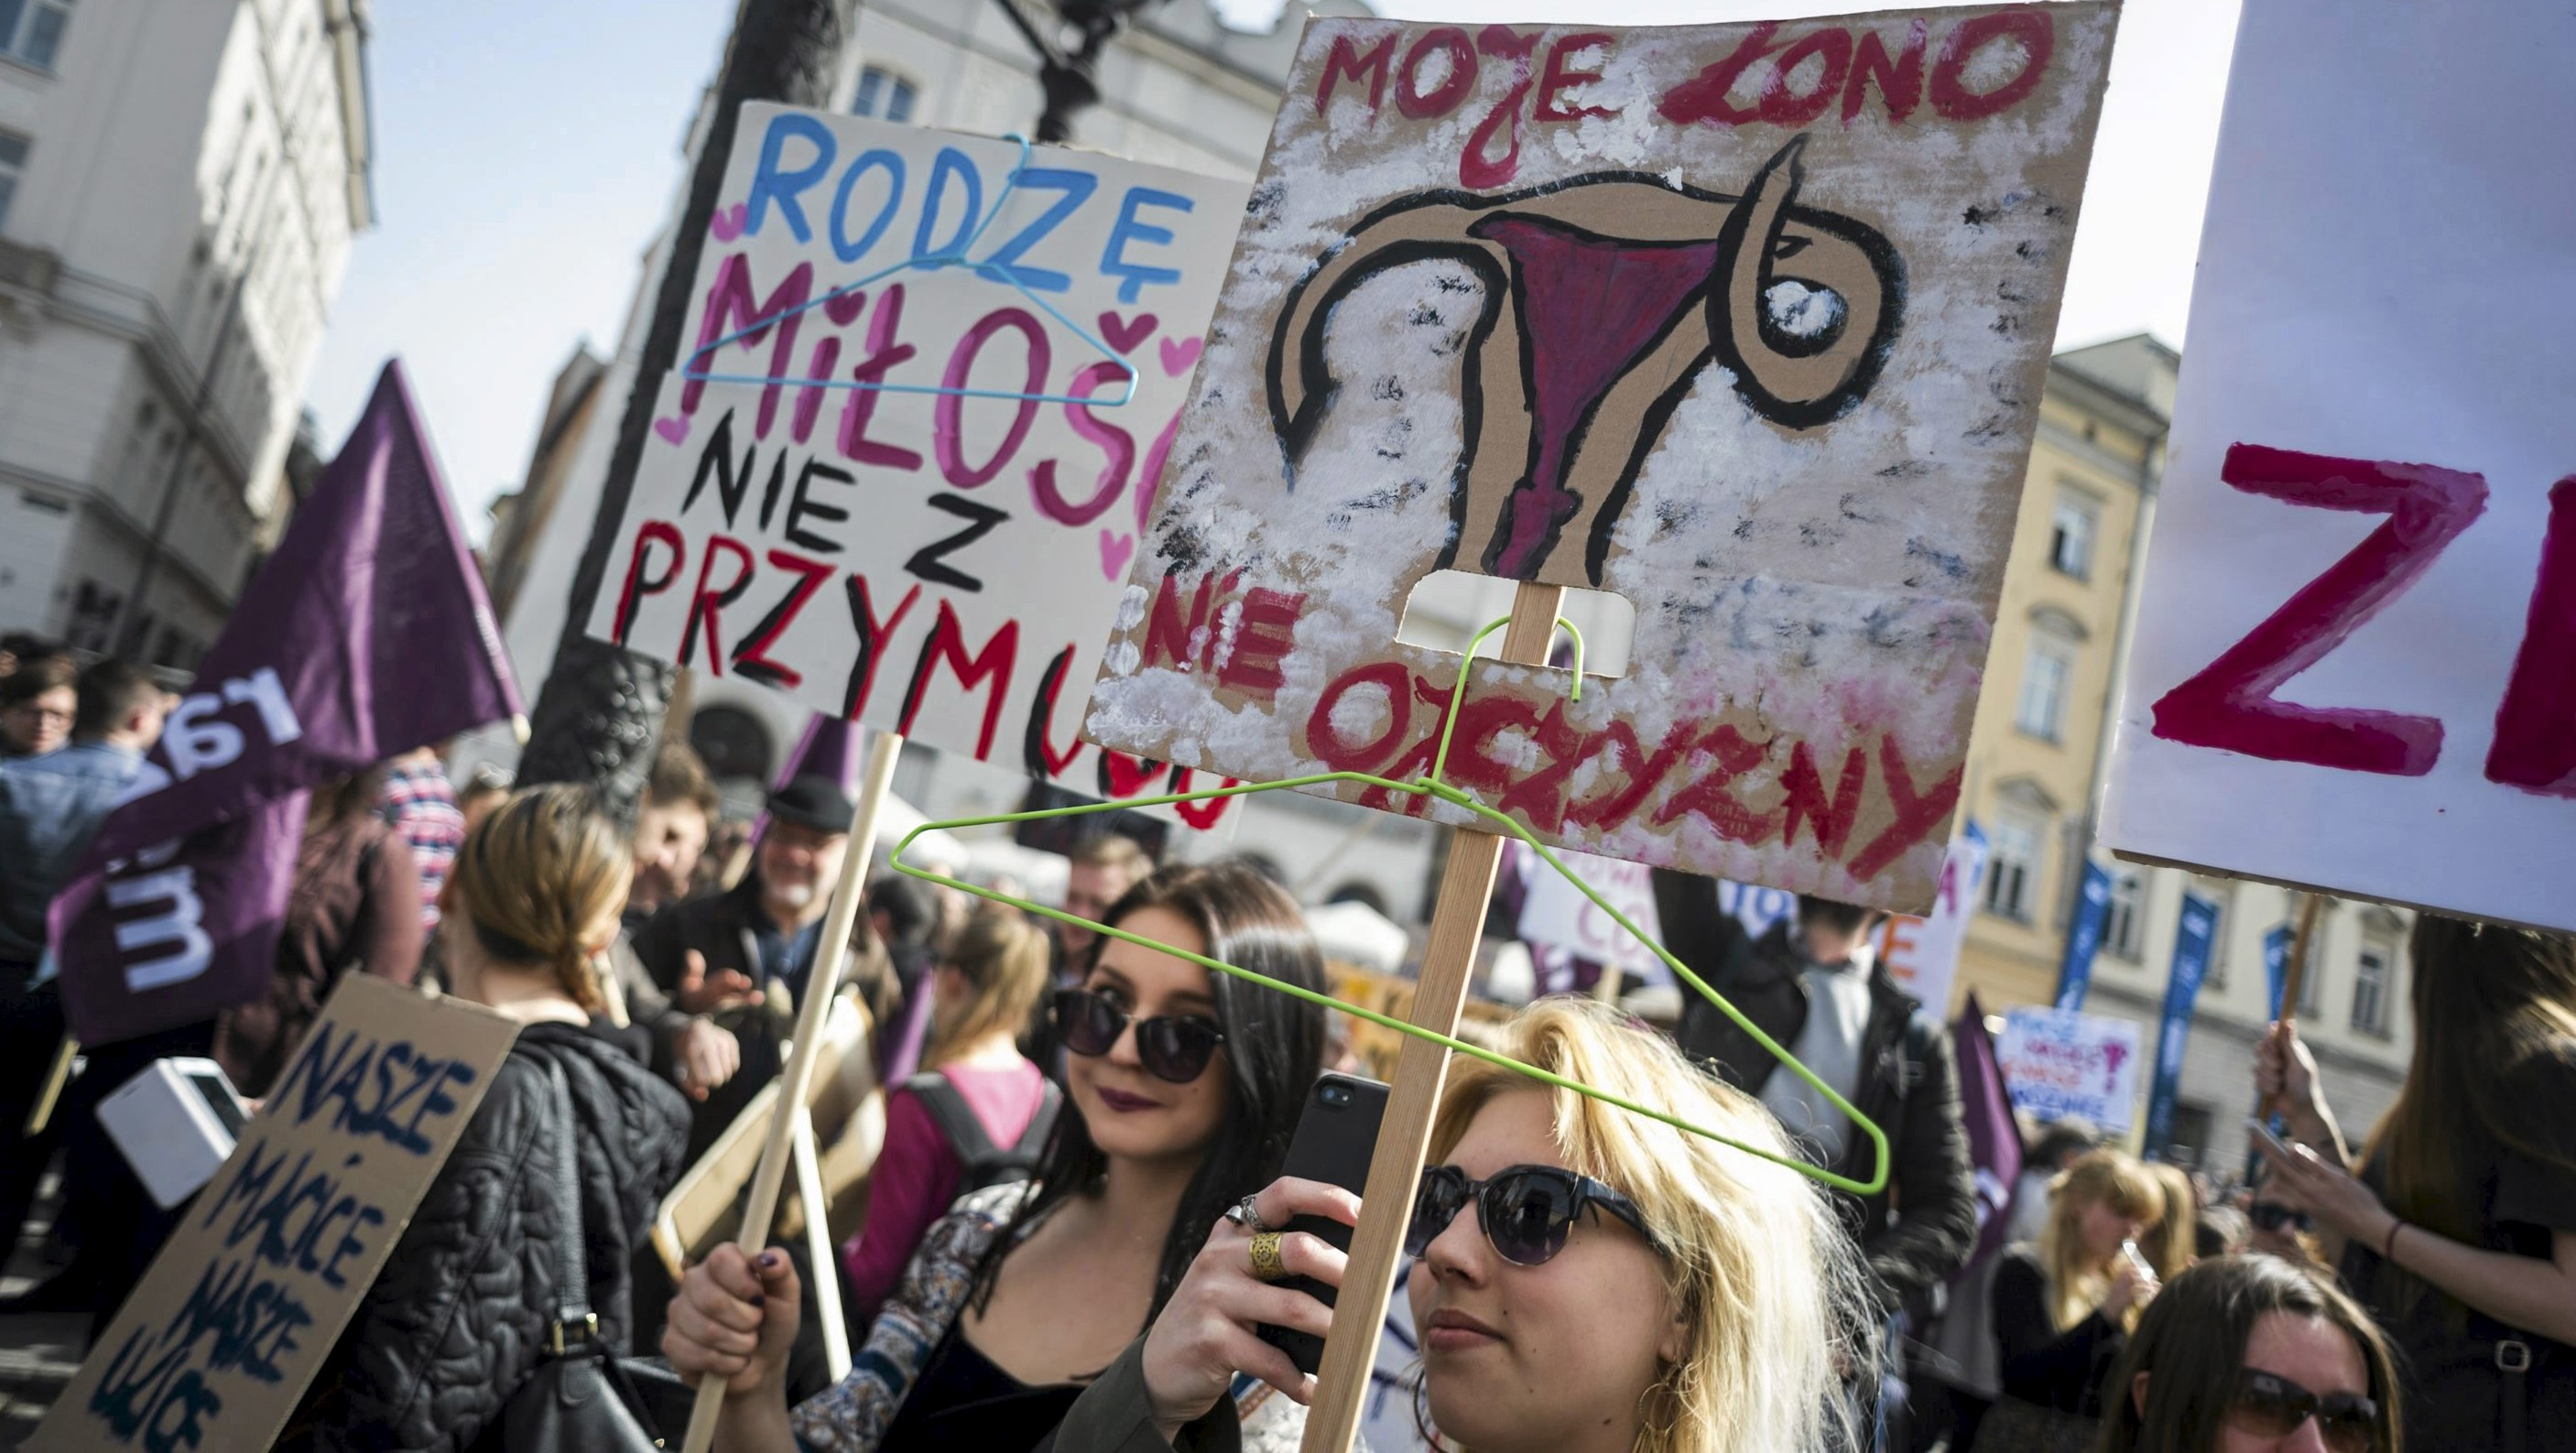 People demonstrate against the Polish government's plans of tightening the abortion law in Krakow, Poland